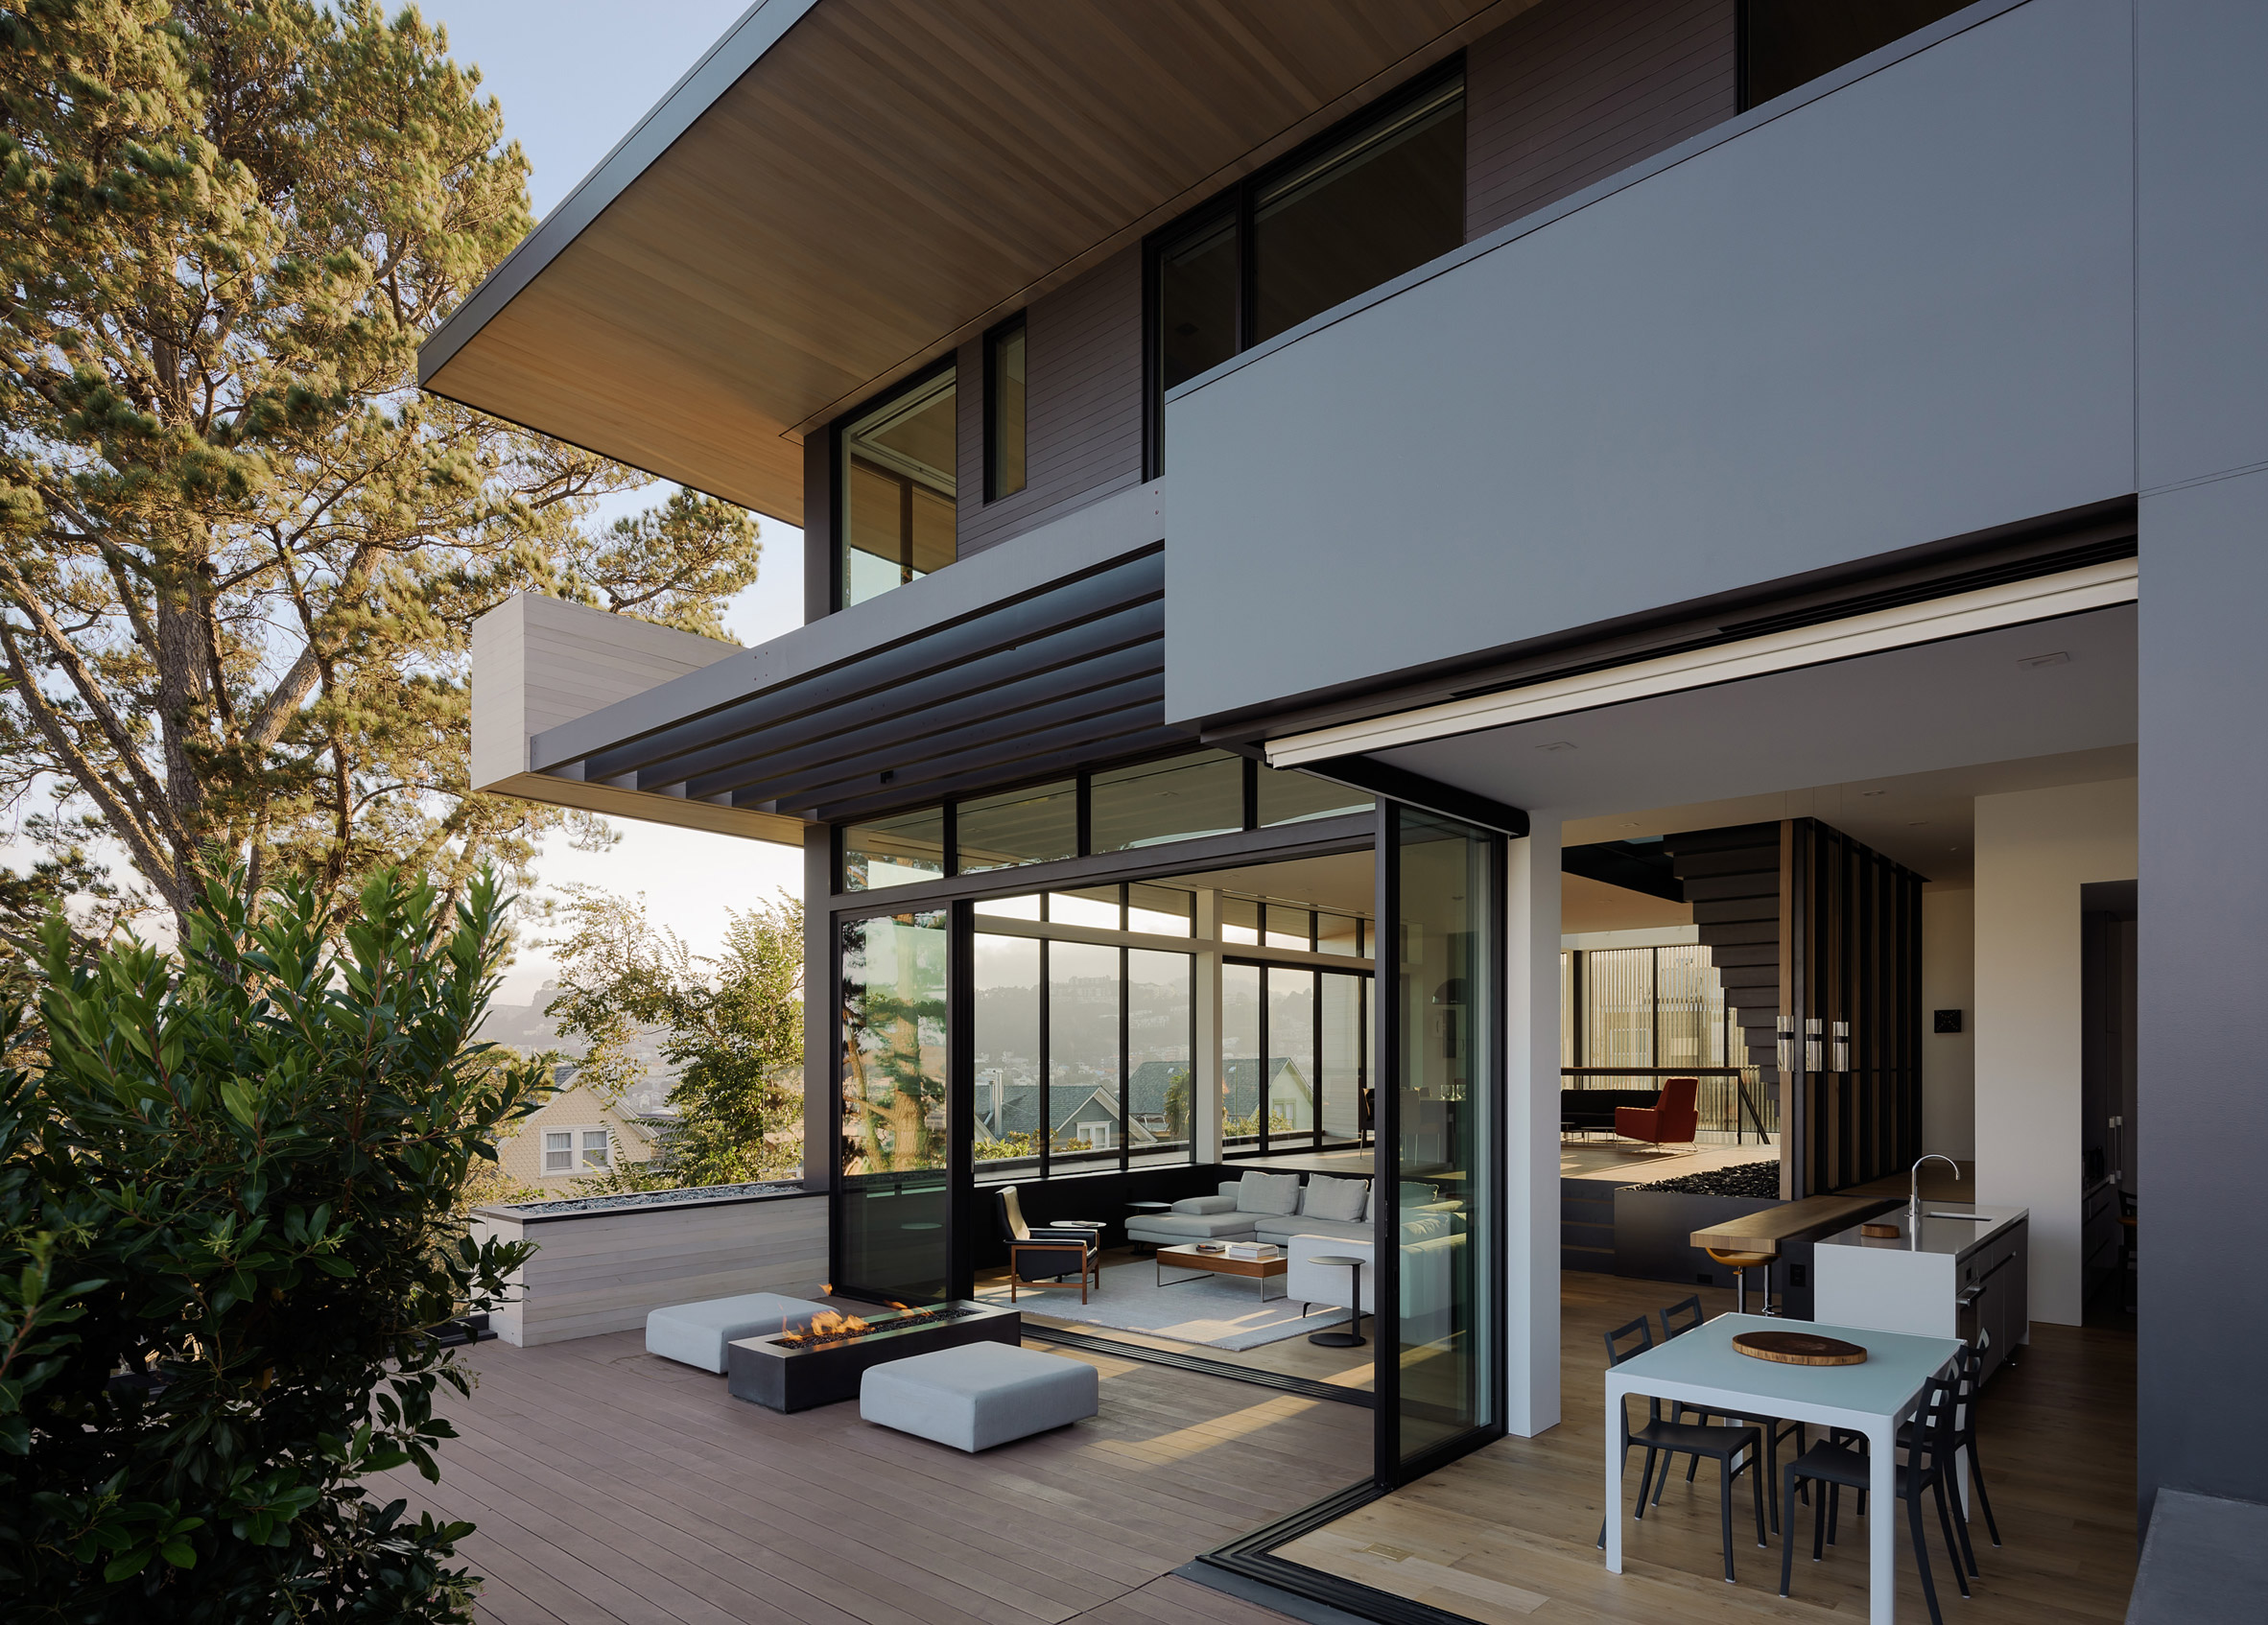 Dolores Heights San Francisco cedar and glass residence by John Maniscalco Architects